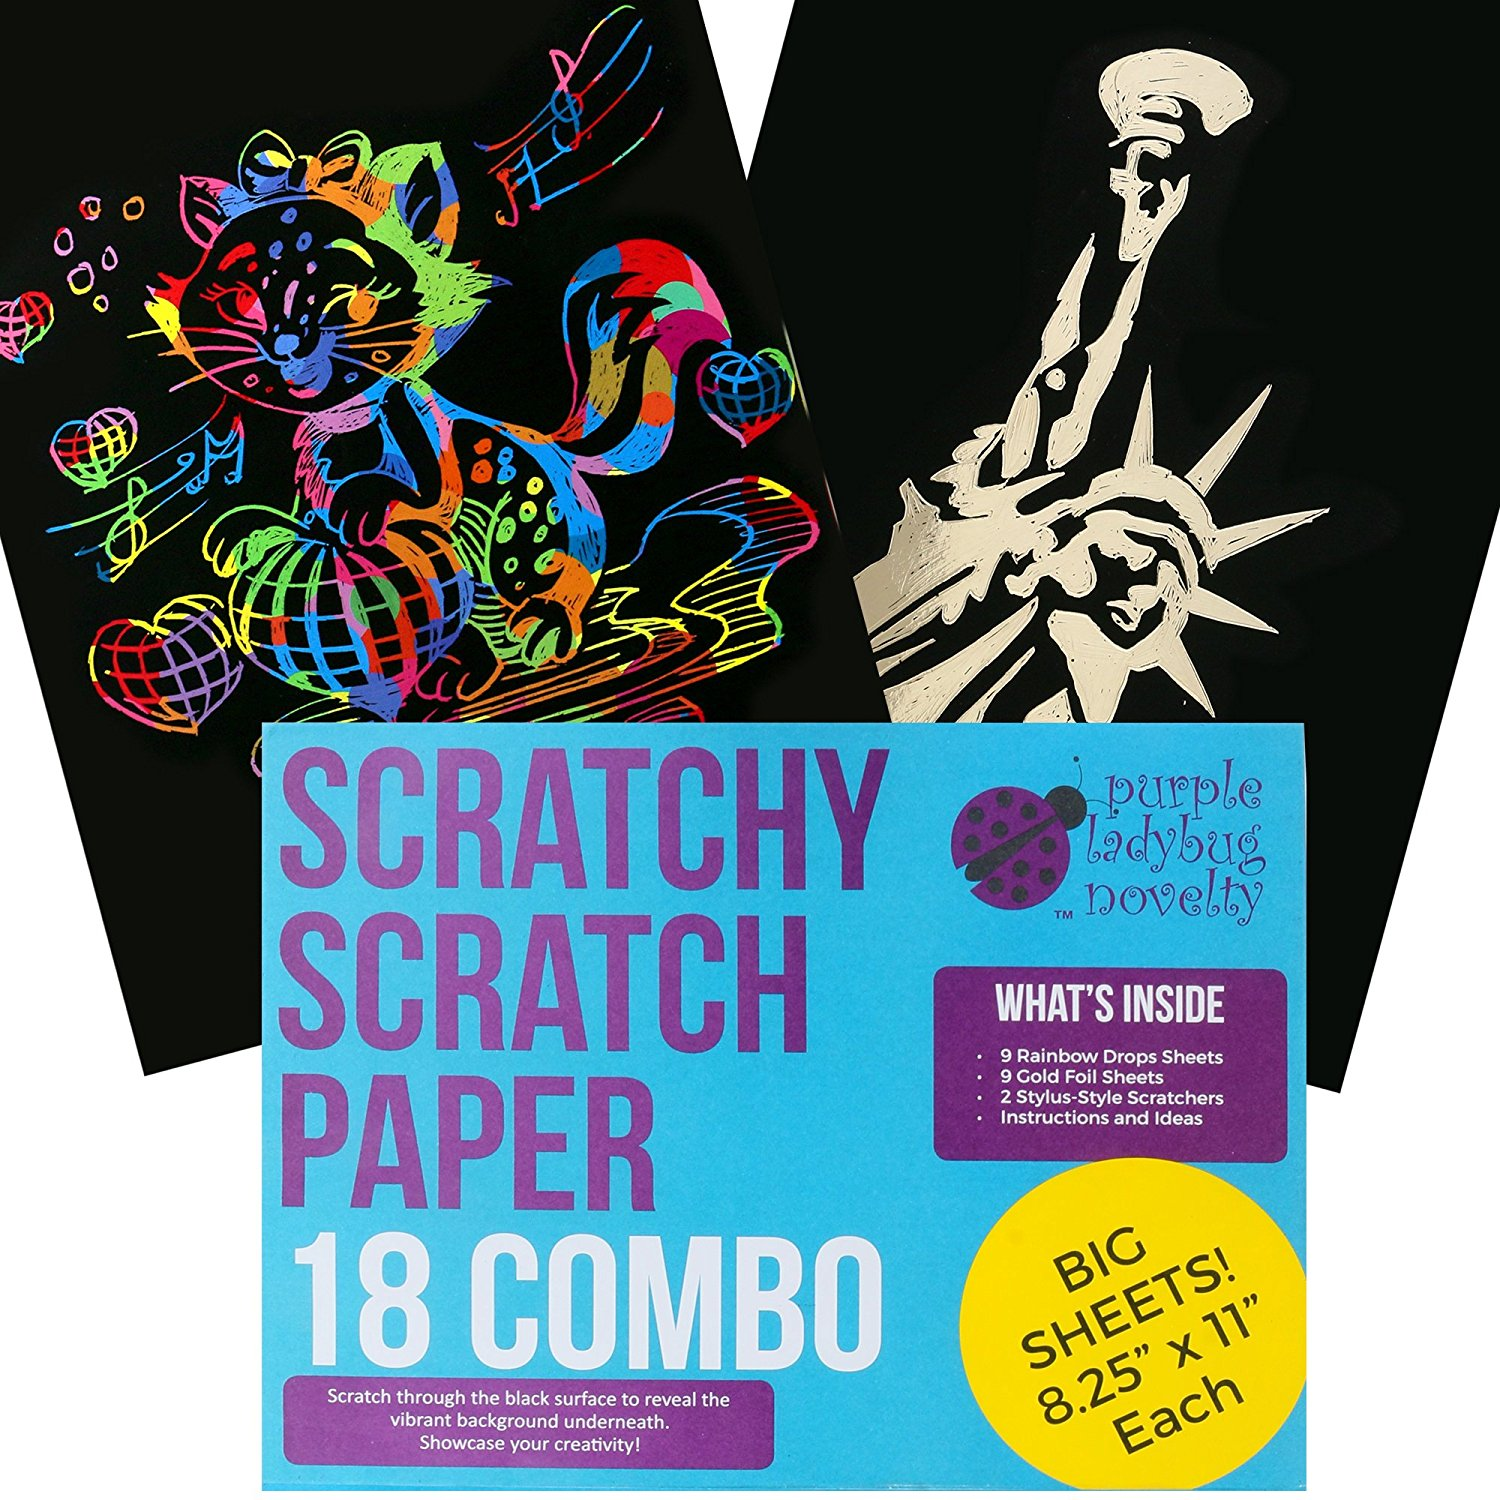 """18 BIG Sheets SCRATCH PAPER Combo Art Set For Kids! 18 BIG 11"""" x 8.25"""" Sheets - 9 Rainbow Scratch Paper Sheets & 9 Gold Foil Sheets! Kit comes with two scratchers - Makes Art Fun for kids and artists!"""